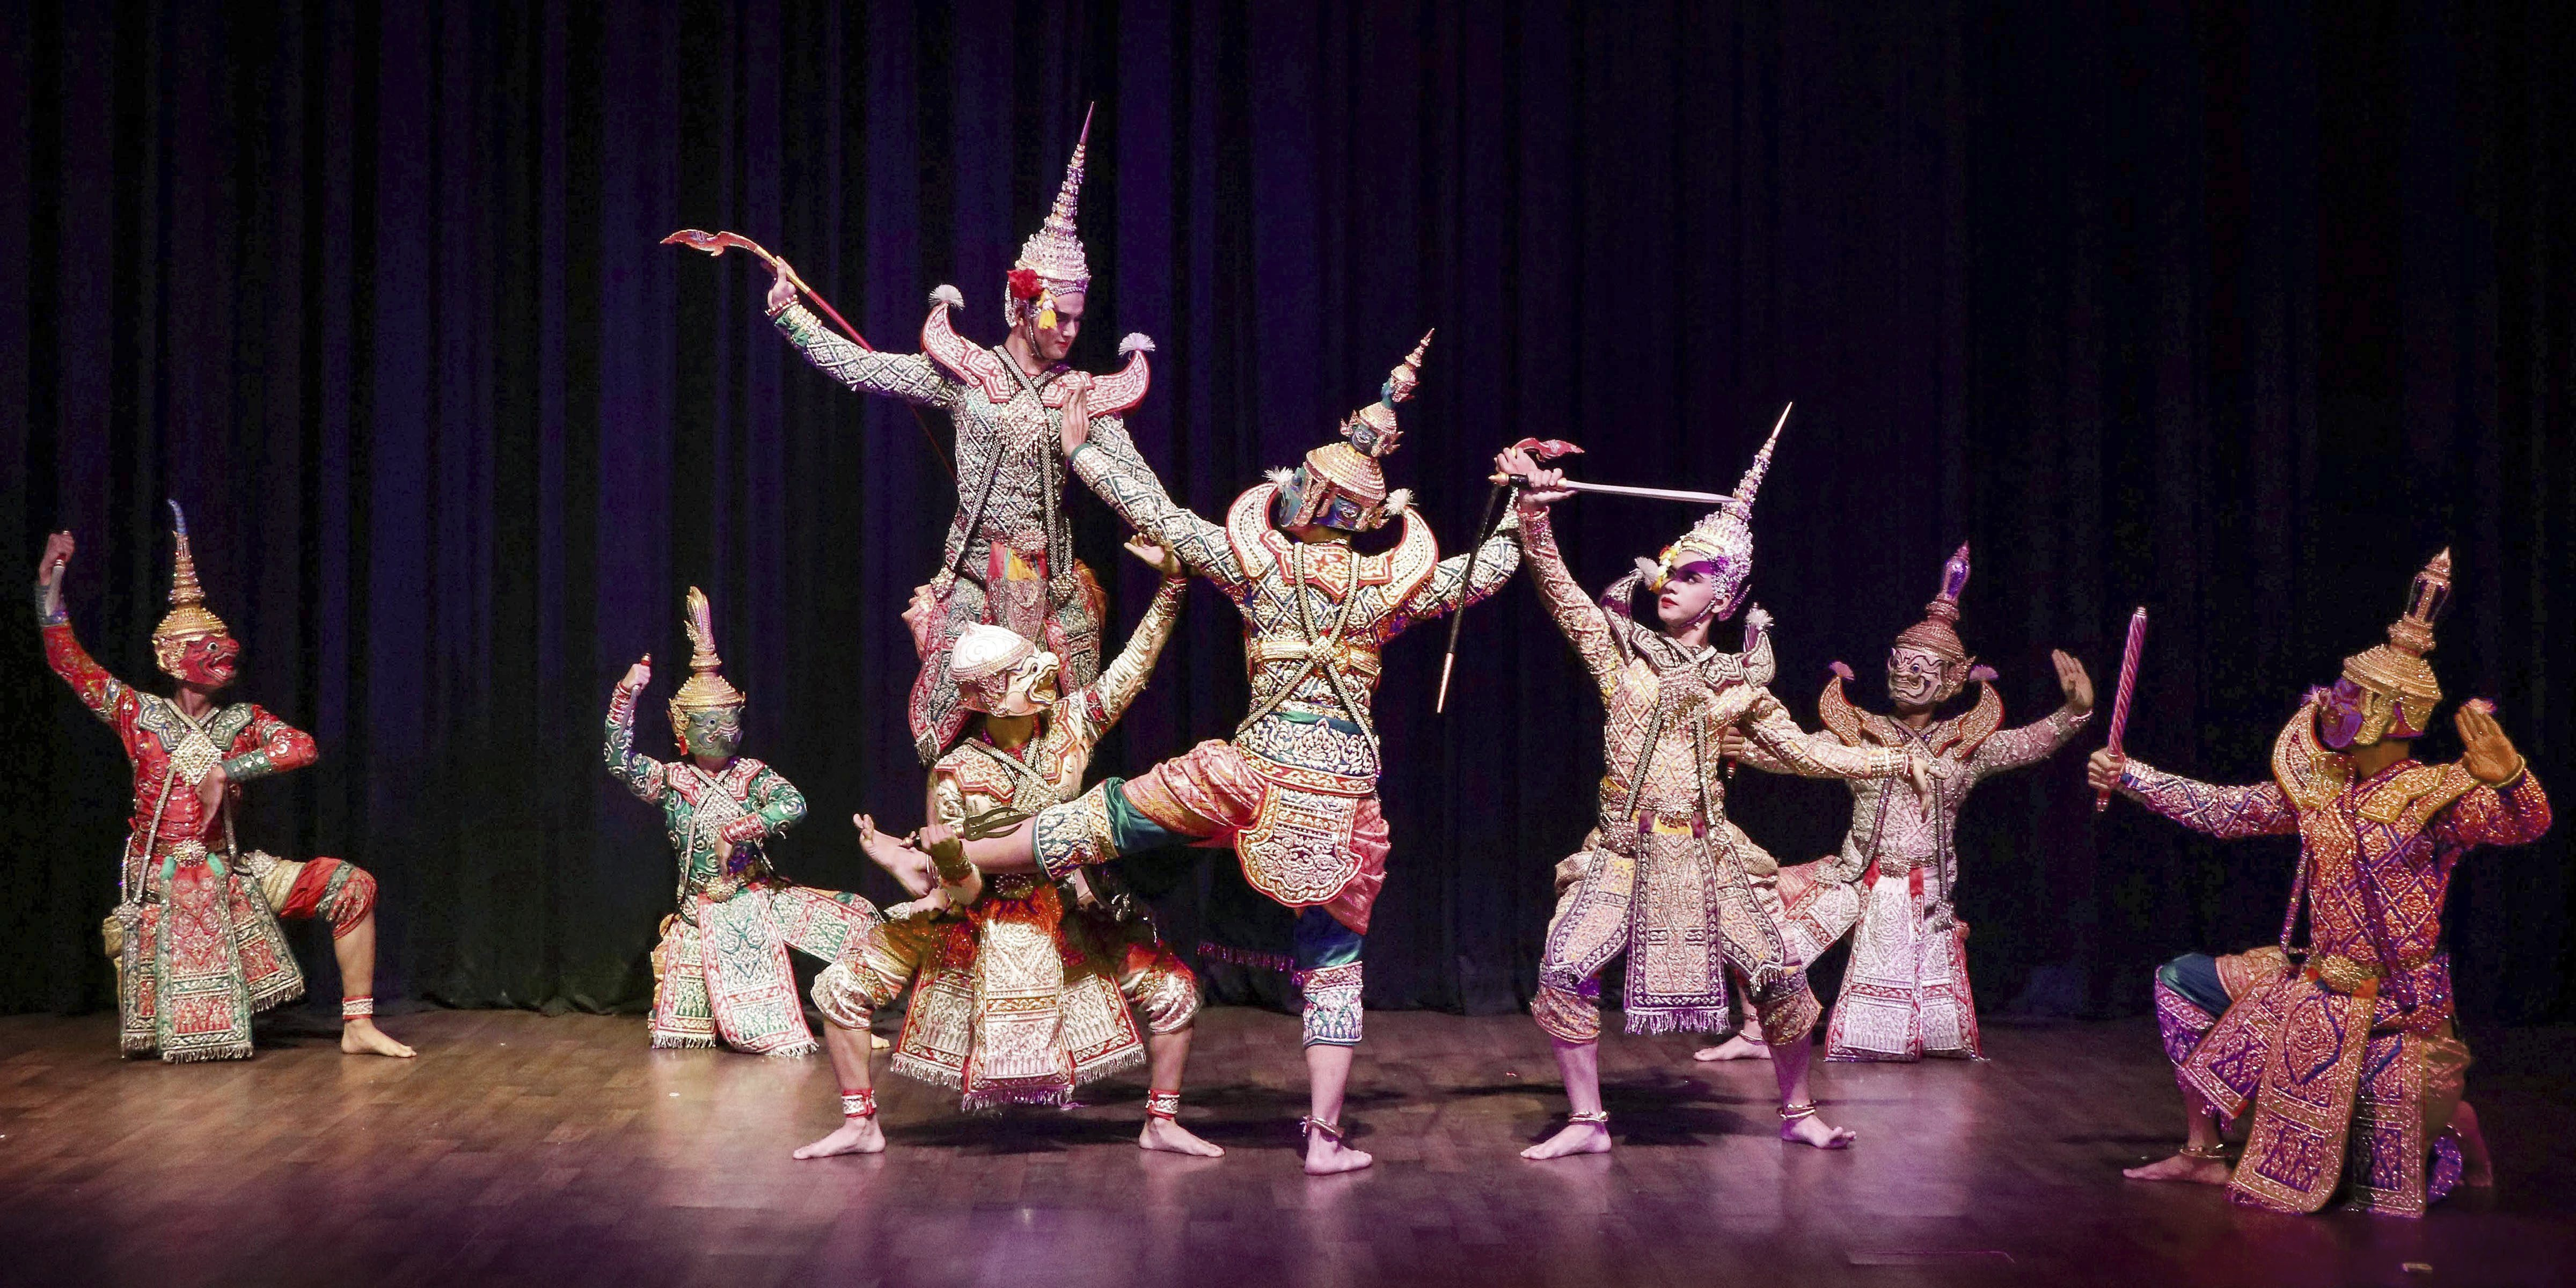 Artists of Ramayana Group from Thailand perform at 4th International Ramayana festival organised by Indian Council For Cultural Relations in Bhopal - PTI